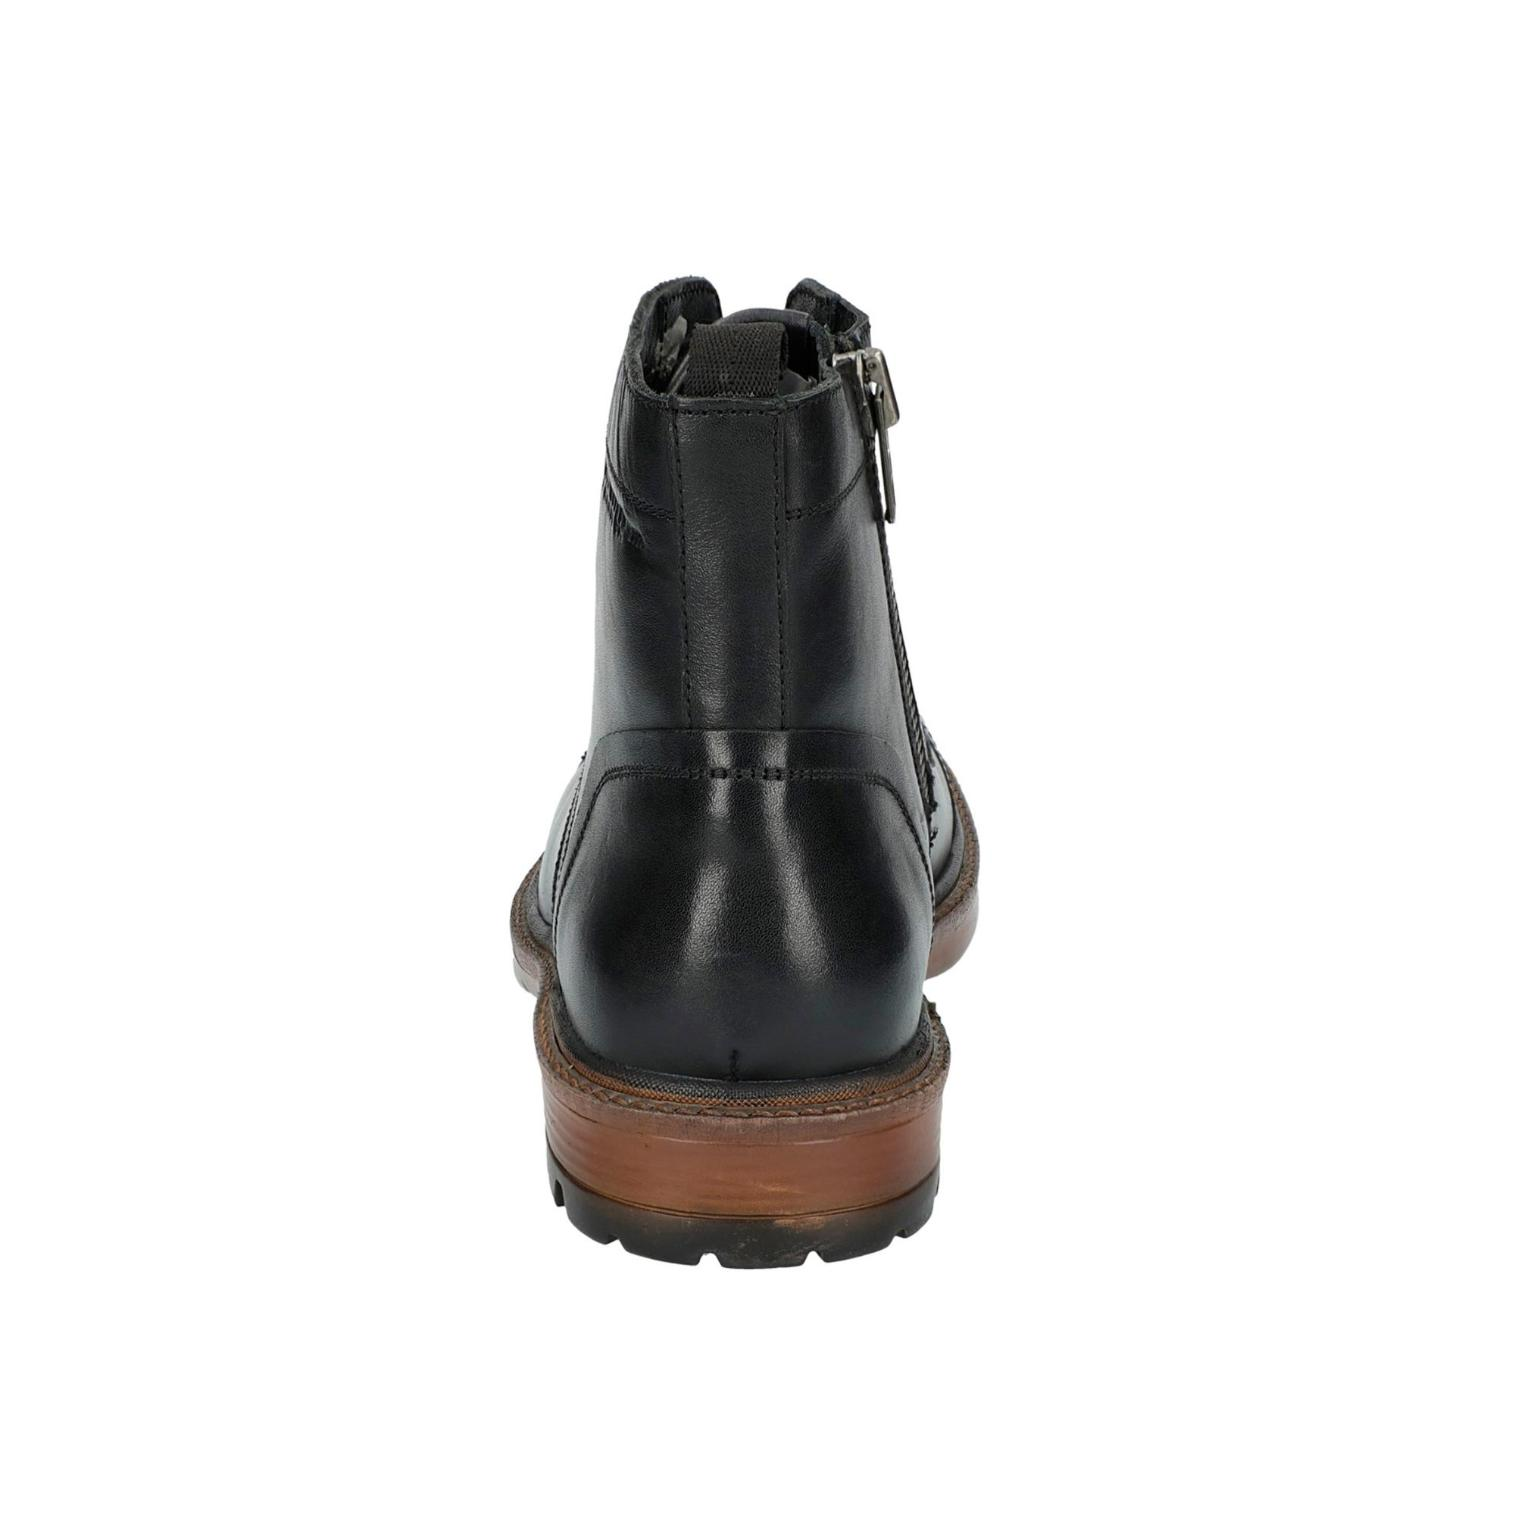 Pepe Jeans Boots in in Boots Farbe schwarz 0a8084